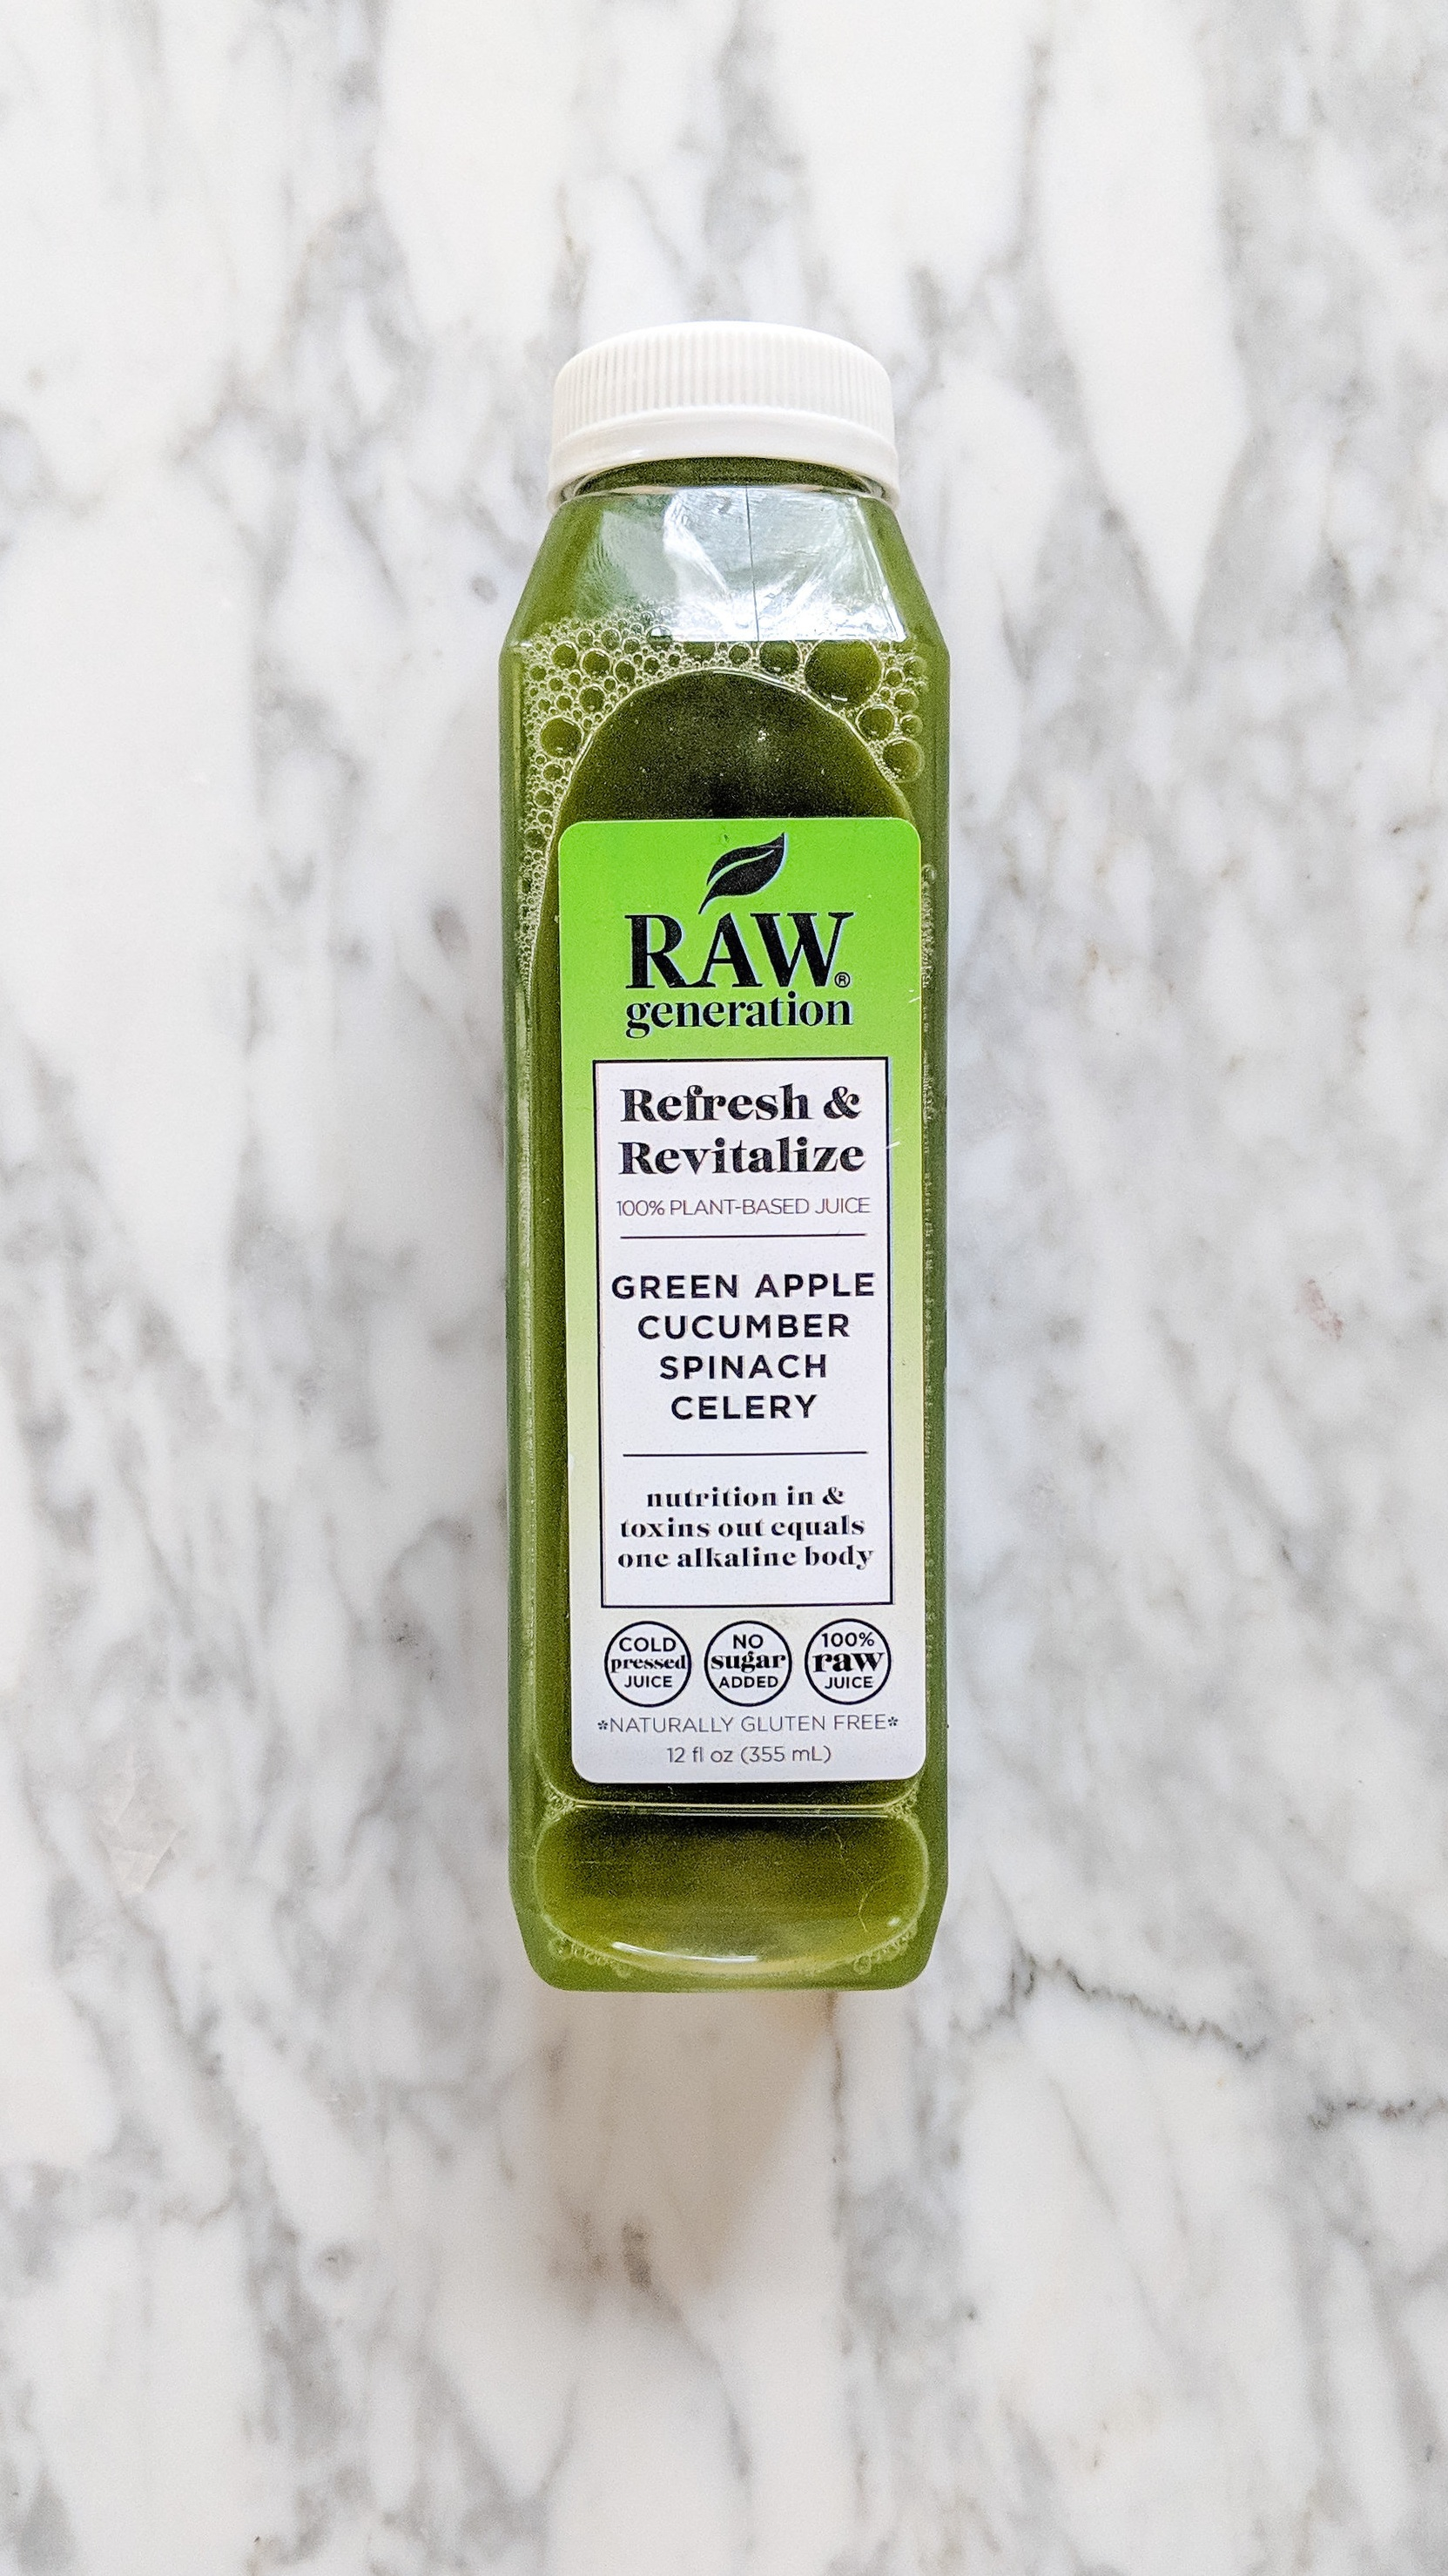 """Refresh & Revitalize"" - INGREDIENTS: green apple, cucumber, spinach, celery, and filtered water.WHAT IT DOES: This juice is for putting ""nutrition in & toxins out."" Most days I drank this one around lunch time!"